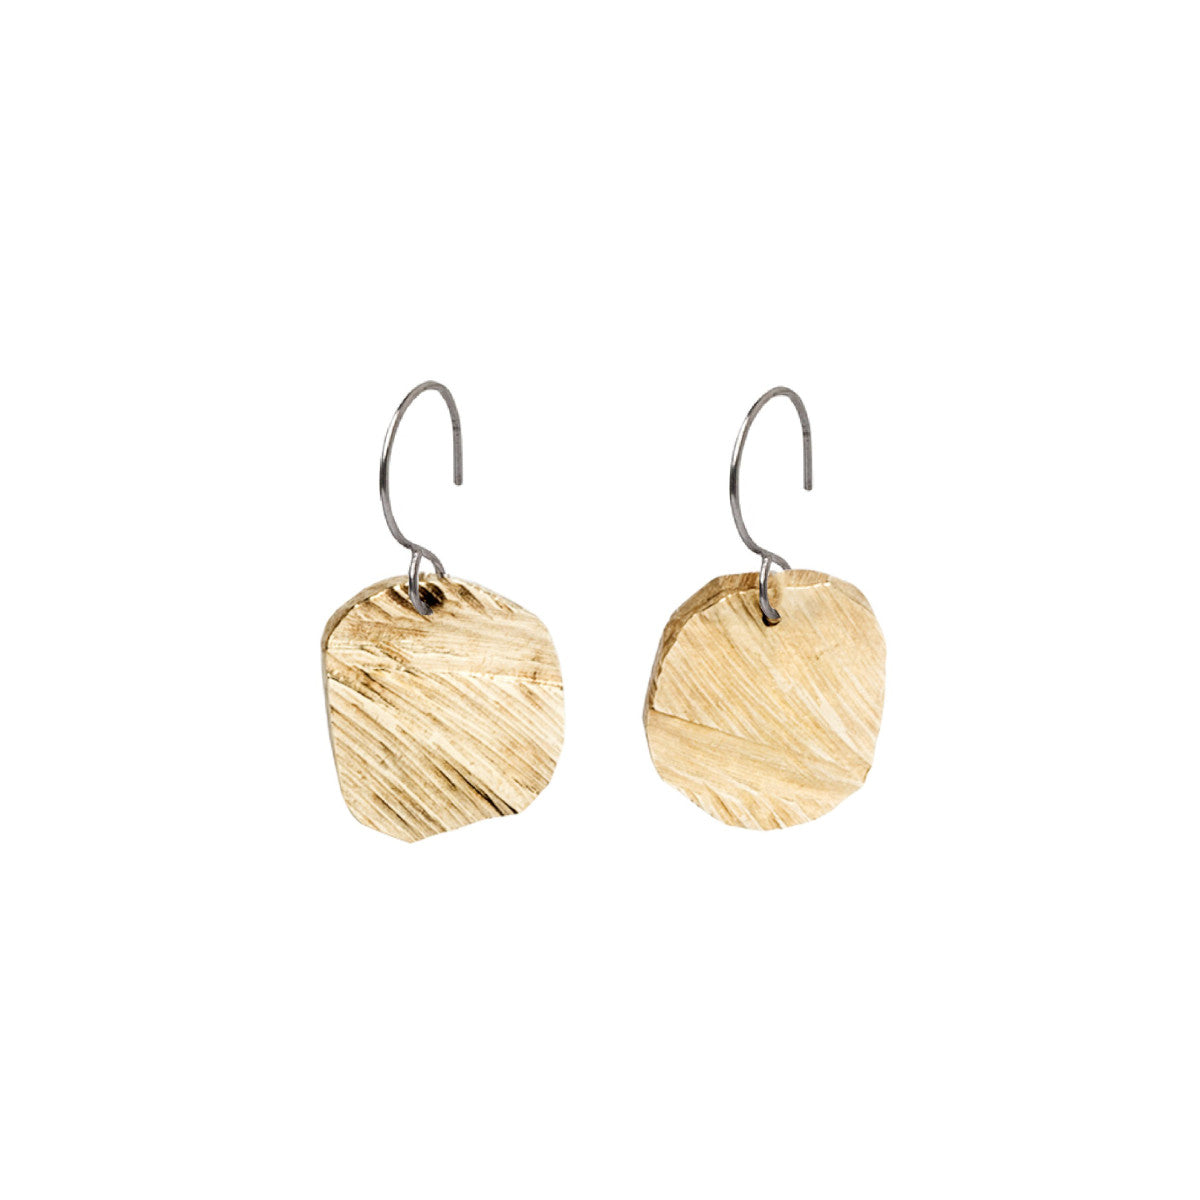 Bronze Elemental Square Drop Earrings